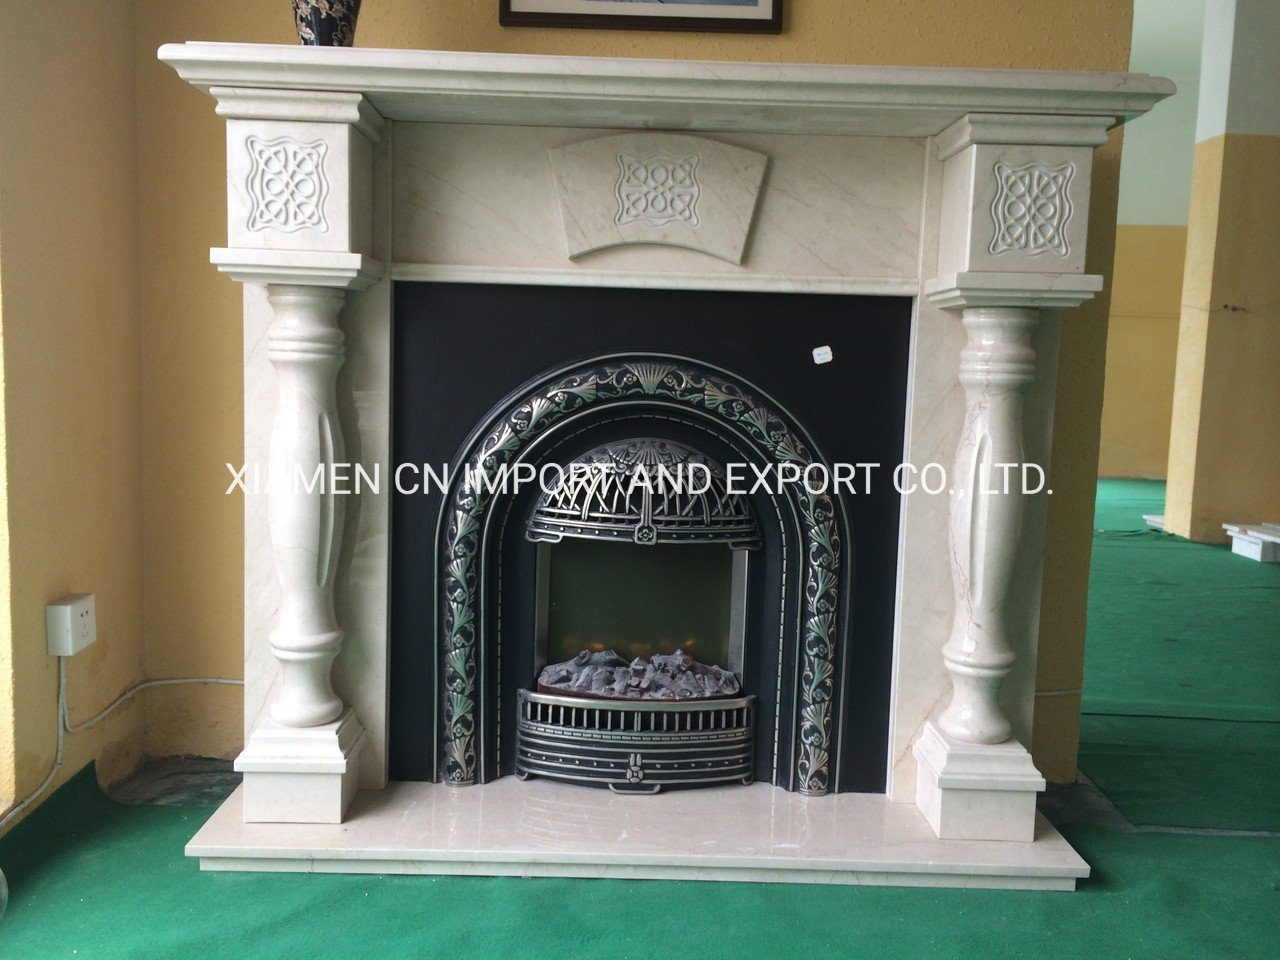 China Natural Stone Marble Fireplace Mantels Stone Fireplace Marble Mantel Stone Mantel Mantel Marble Surround Carved Electric Fireplace For Home Hotel Decoration China Stone Mantel Stone Fireplace